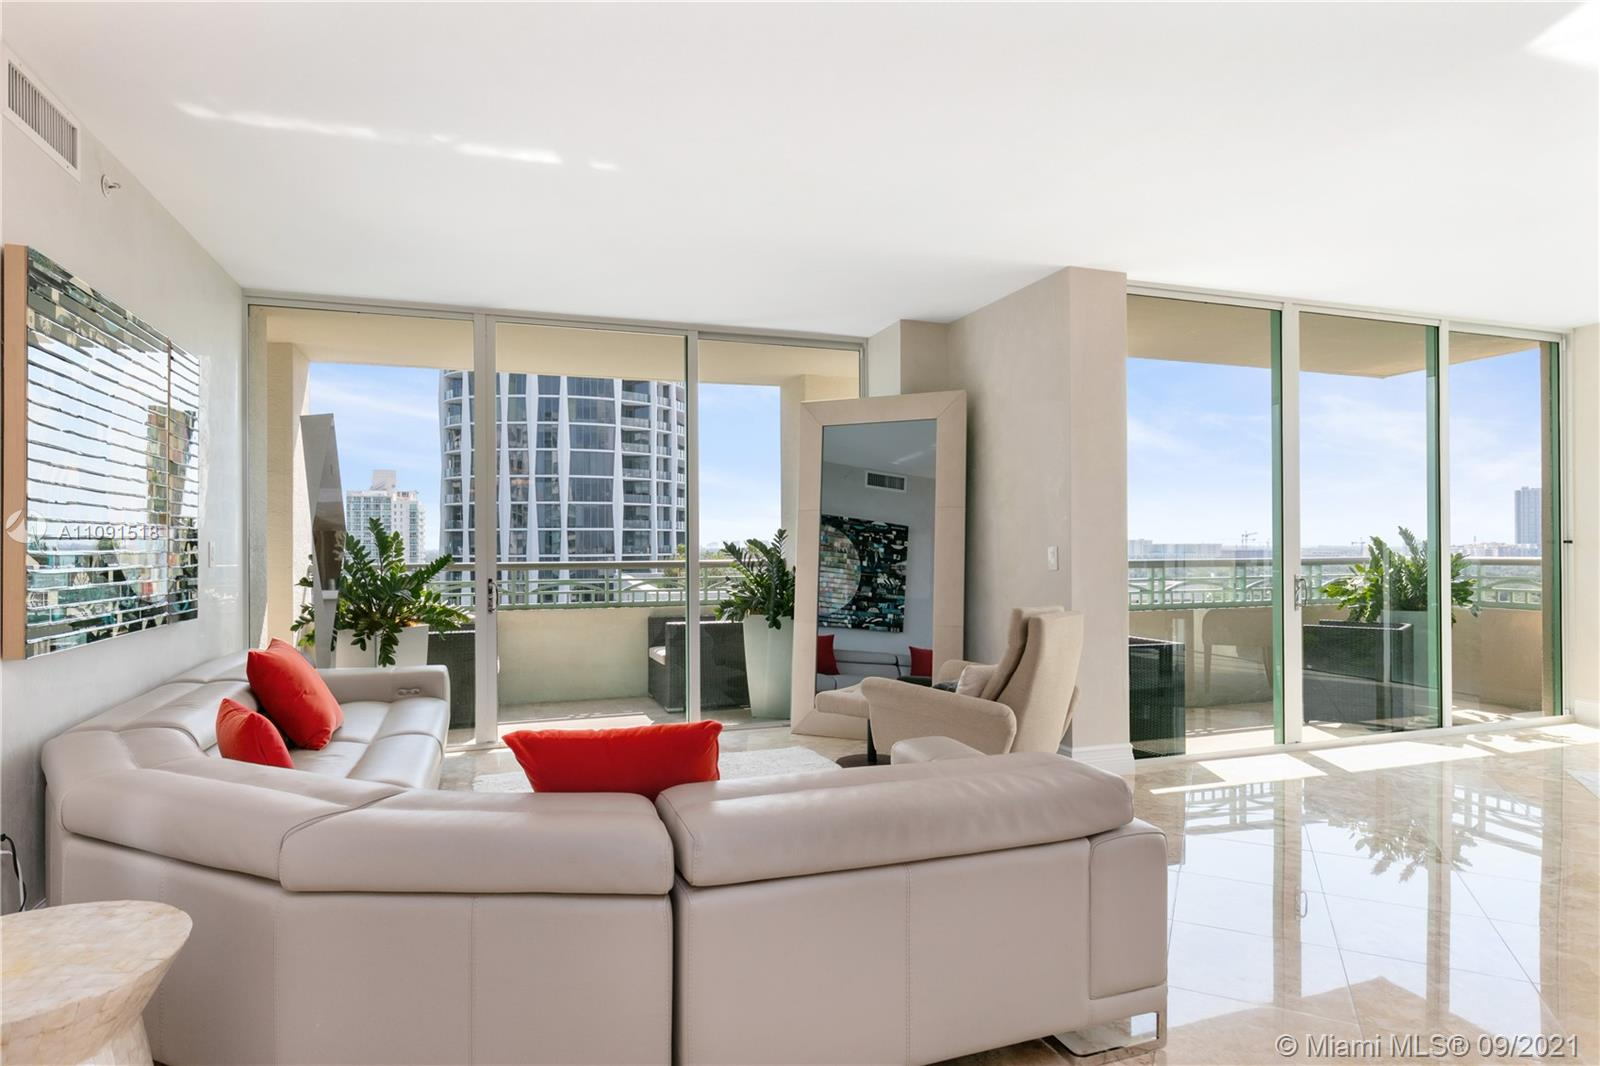 Large corner unit high-floor 2 bedroom plus den with 2.5 baths. Great views to Coconut Grove and downtown Coral Gables from every room. Partial water view. Foyer entry with marble flooring throughout. Huge kitchen. Media room/den enclosed and can be a 3rd bedroom (has a window and a door). Luxurious master bath with dual sinks, Jacuzzi tub and separate glass enclosed shower. Ritz-Carlton residences and hotel amenities and privileges.